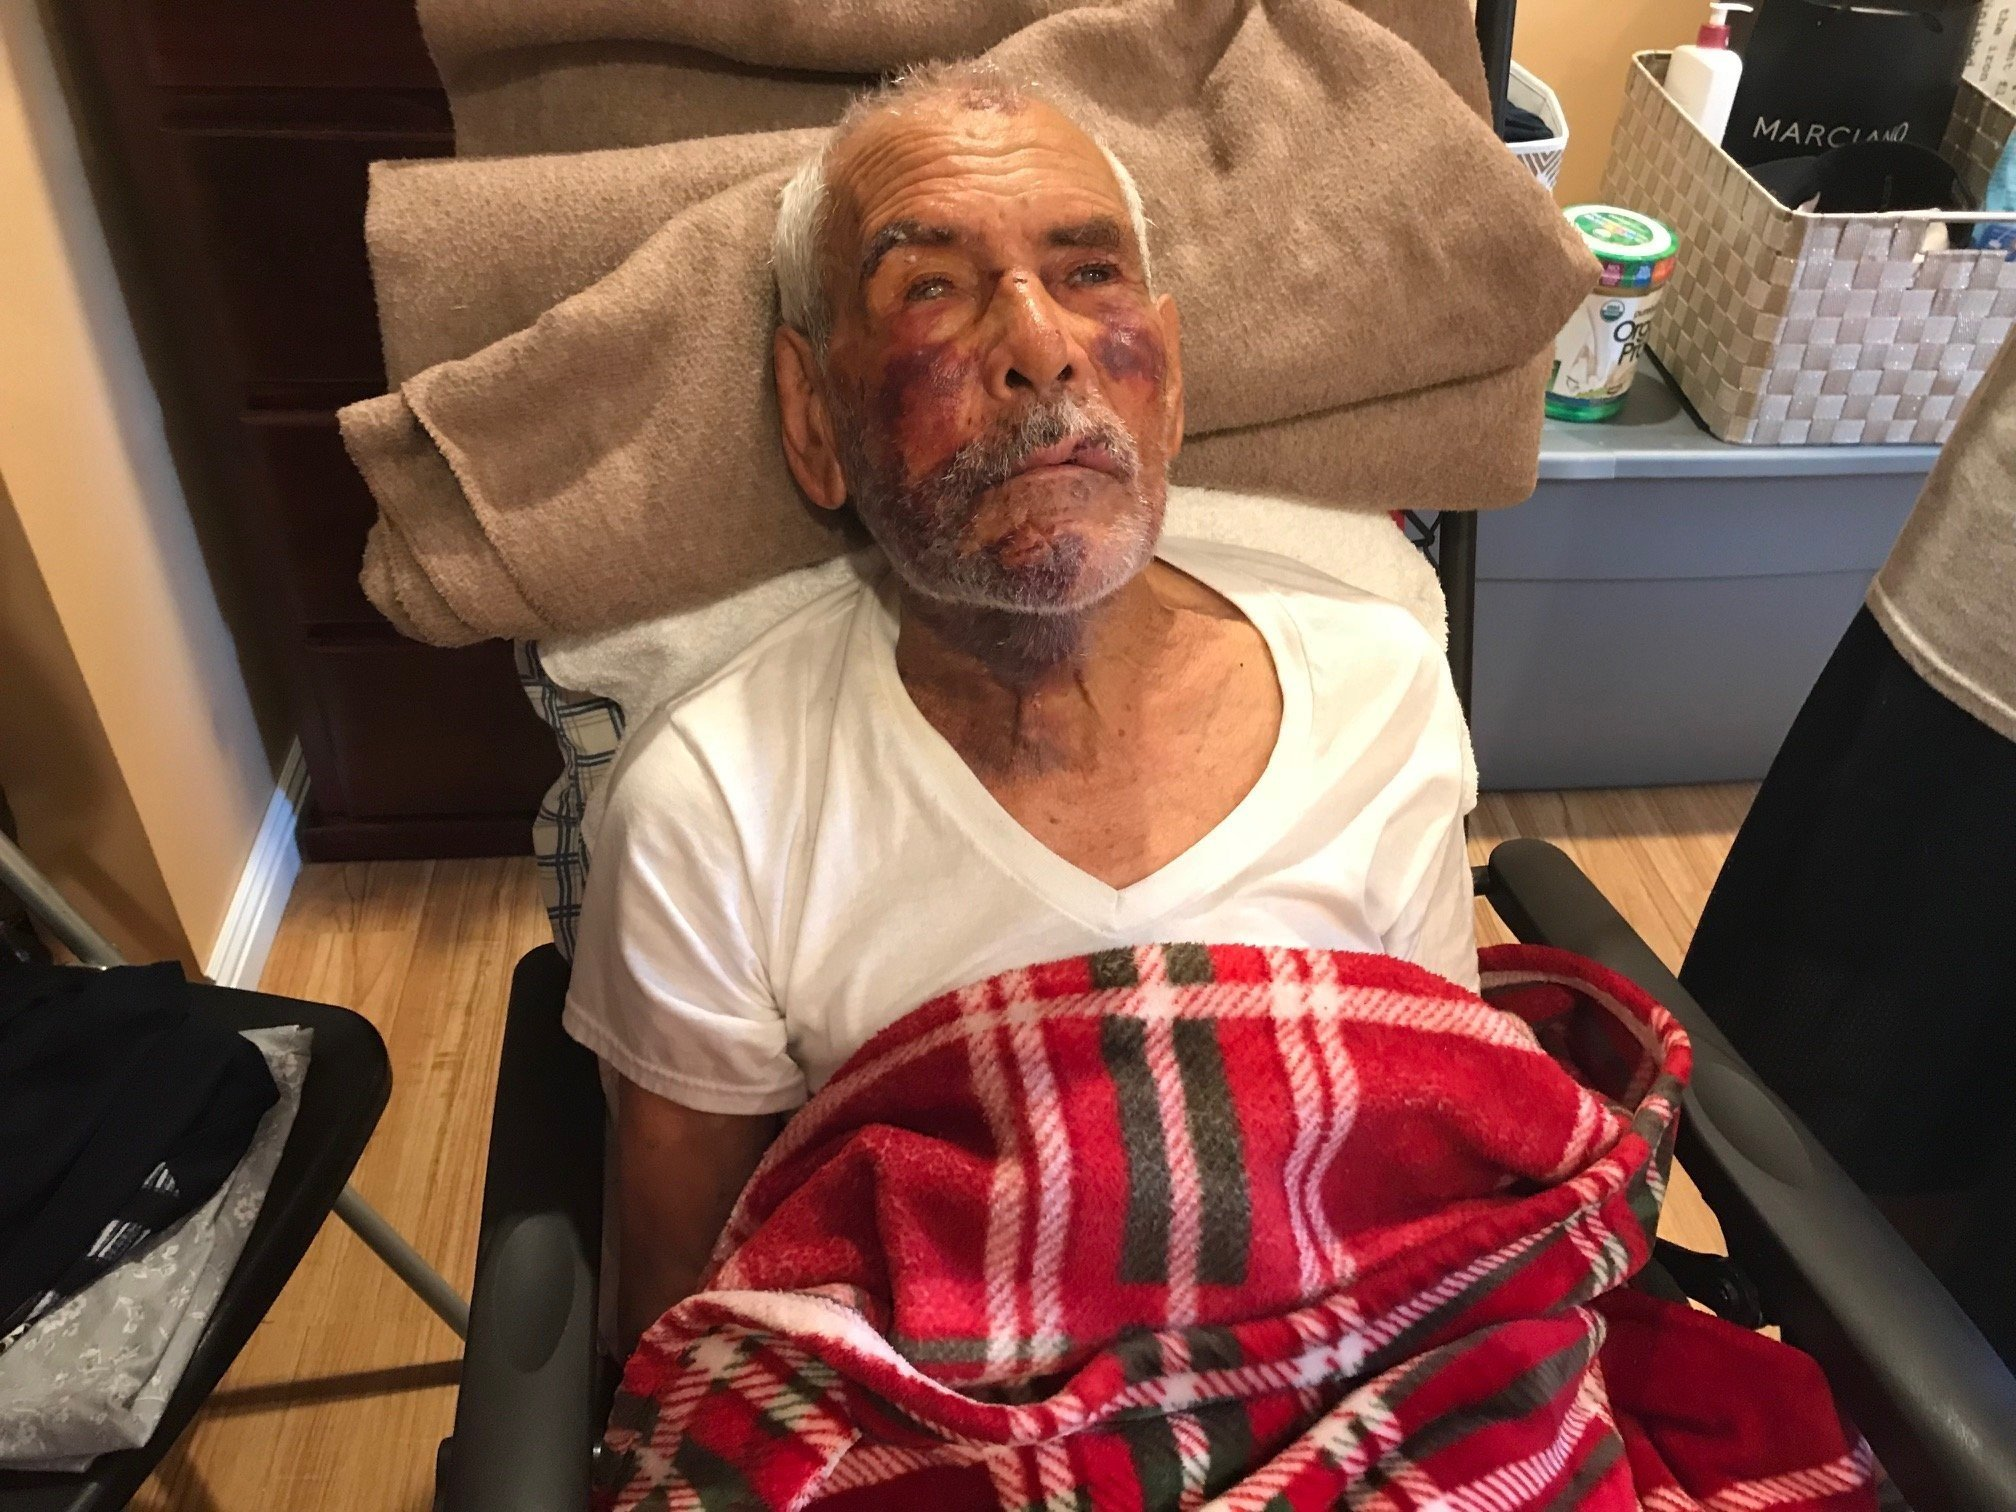 After beating 92-year-old American accused of attempted murder